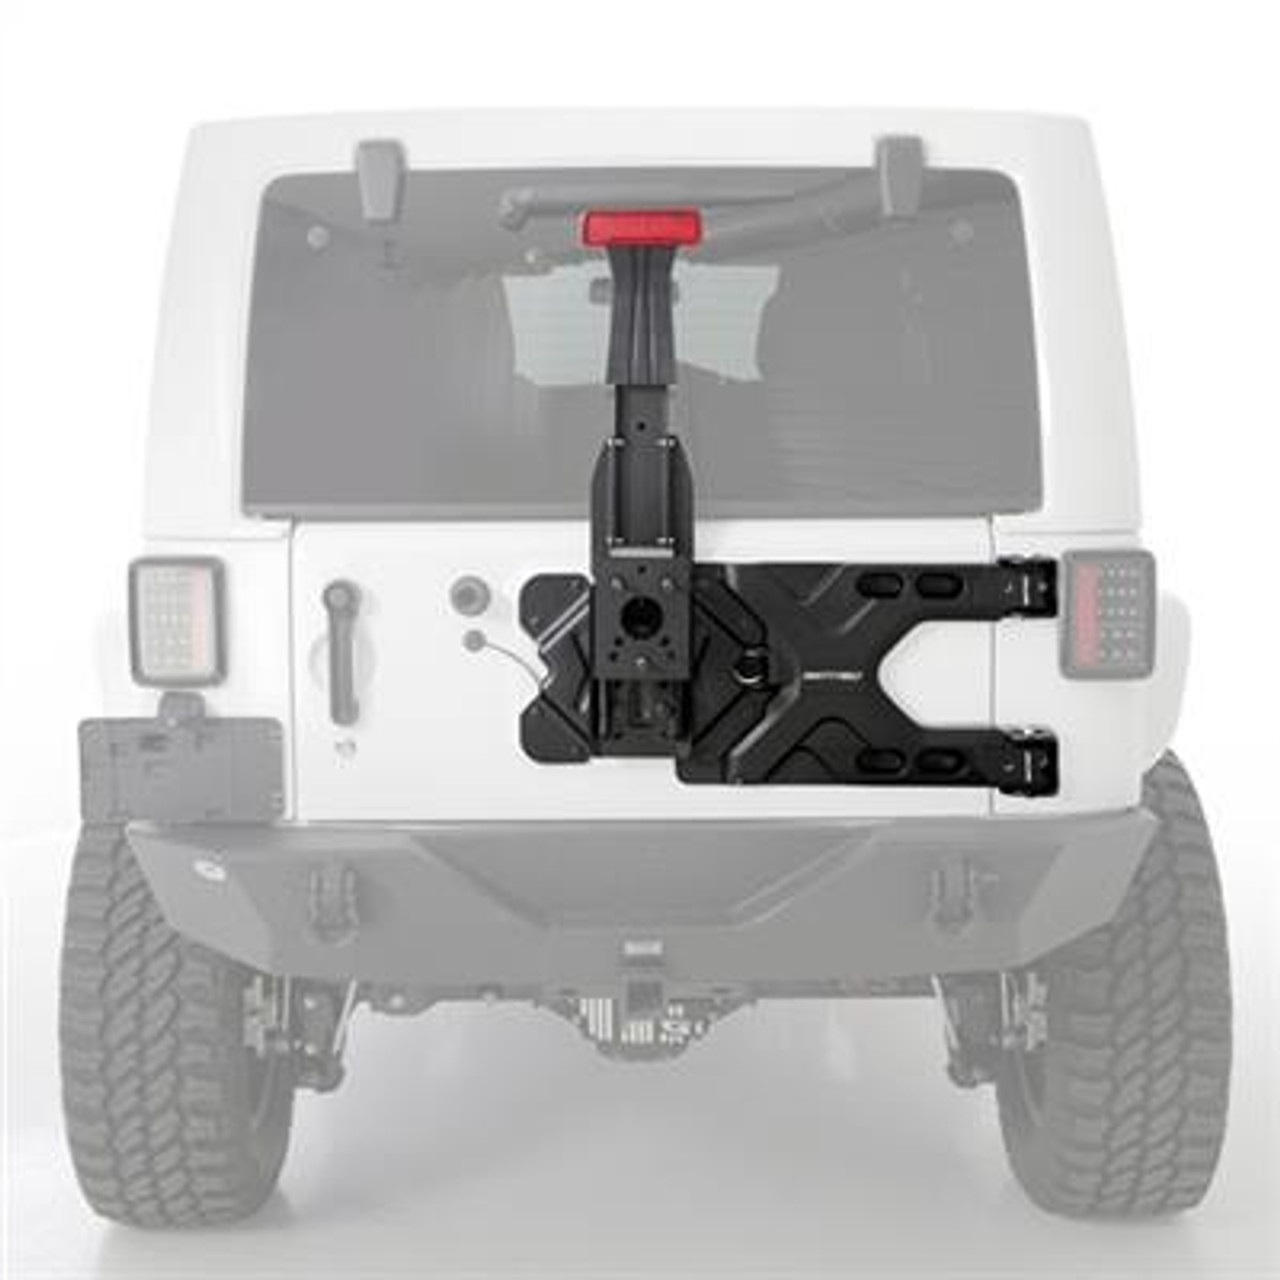 Pivot Heavy-Duty Oversize Tire Carrier for Wrangler JK 2007-2018 -  JPFEDERATION | White Jeep Sahara Lifted With Tire Carrier And Led Tail Lights |  | Parts Accessories for Jeep Wrangler JL JK TJ Gladiator